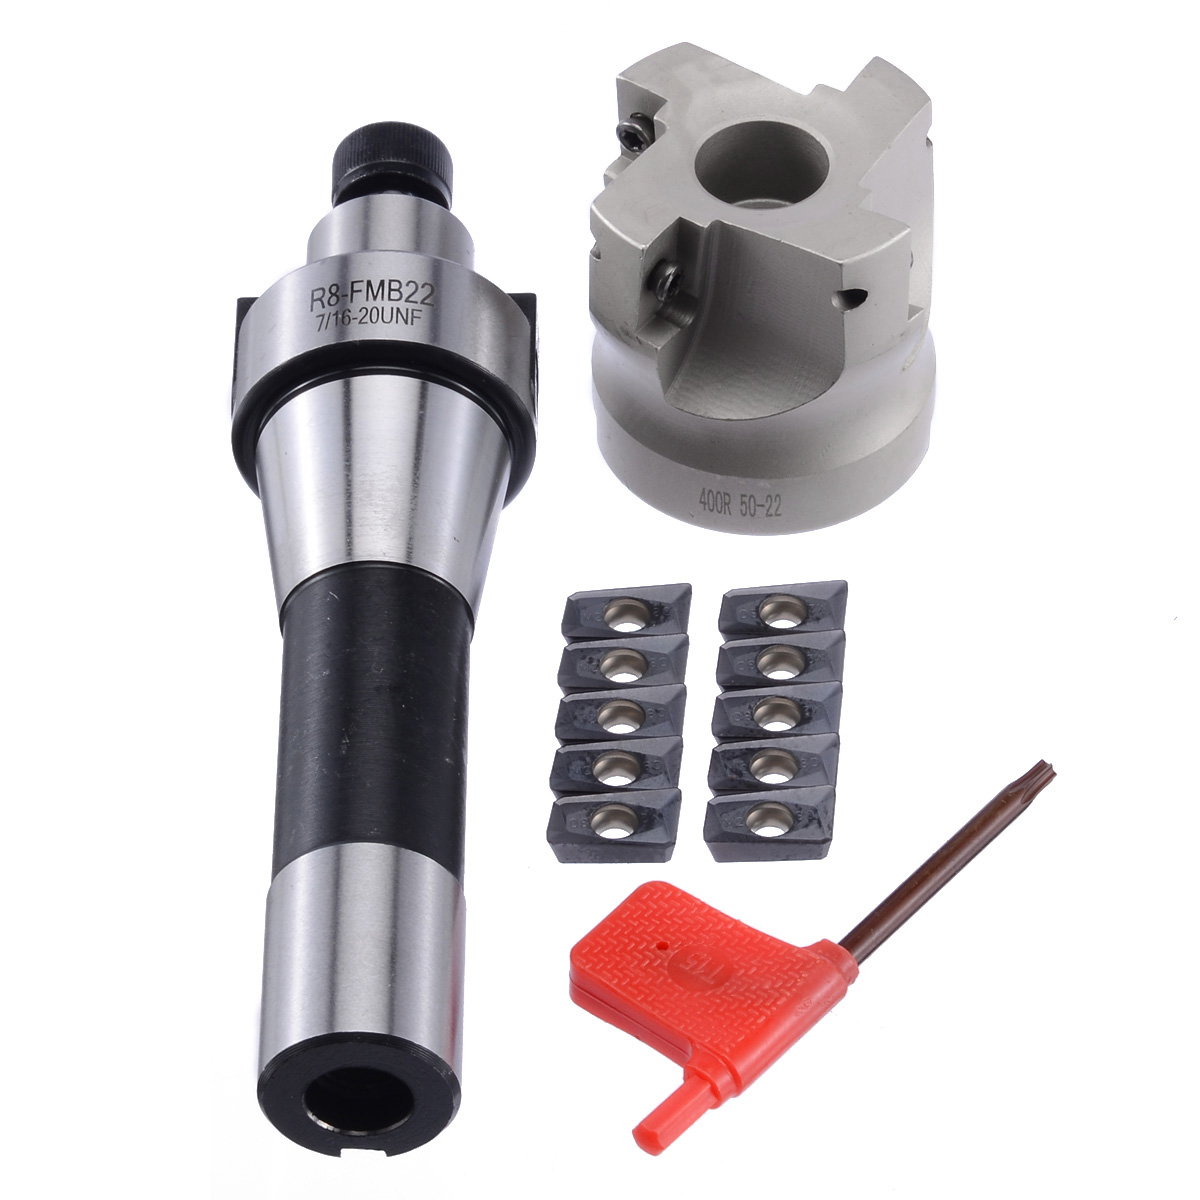 400R 50MM Milling CNC Face End Mill Cutter Kit + 10pcs APMT1604 Carbide Inserts + R8 Shank Arbor for Power Machine Tool